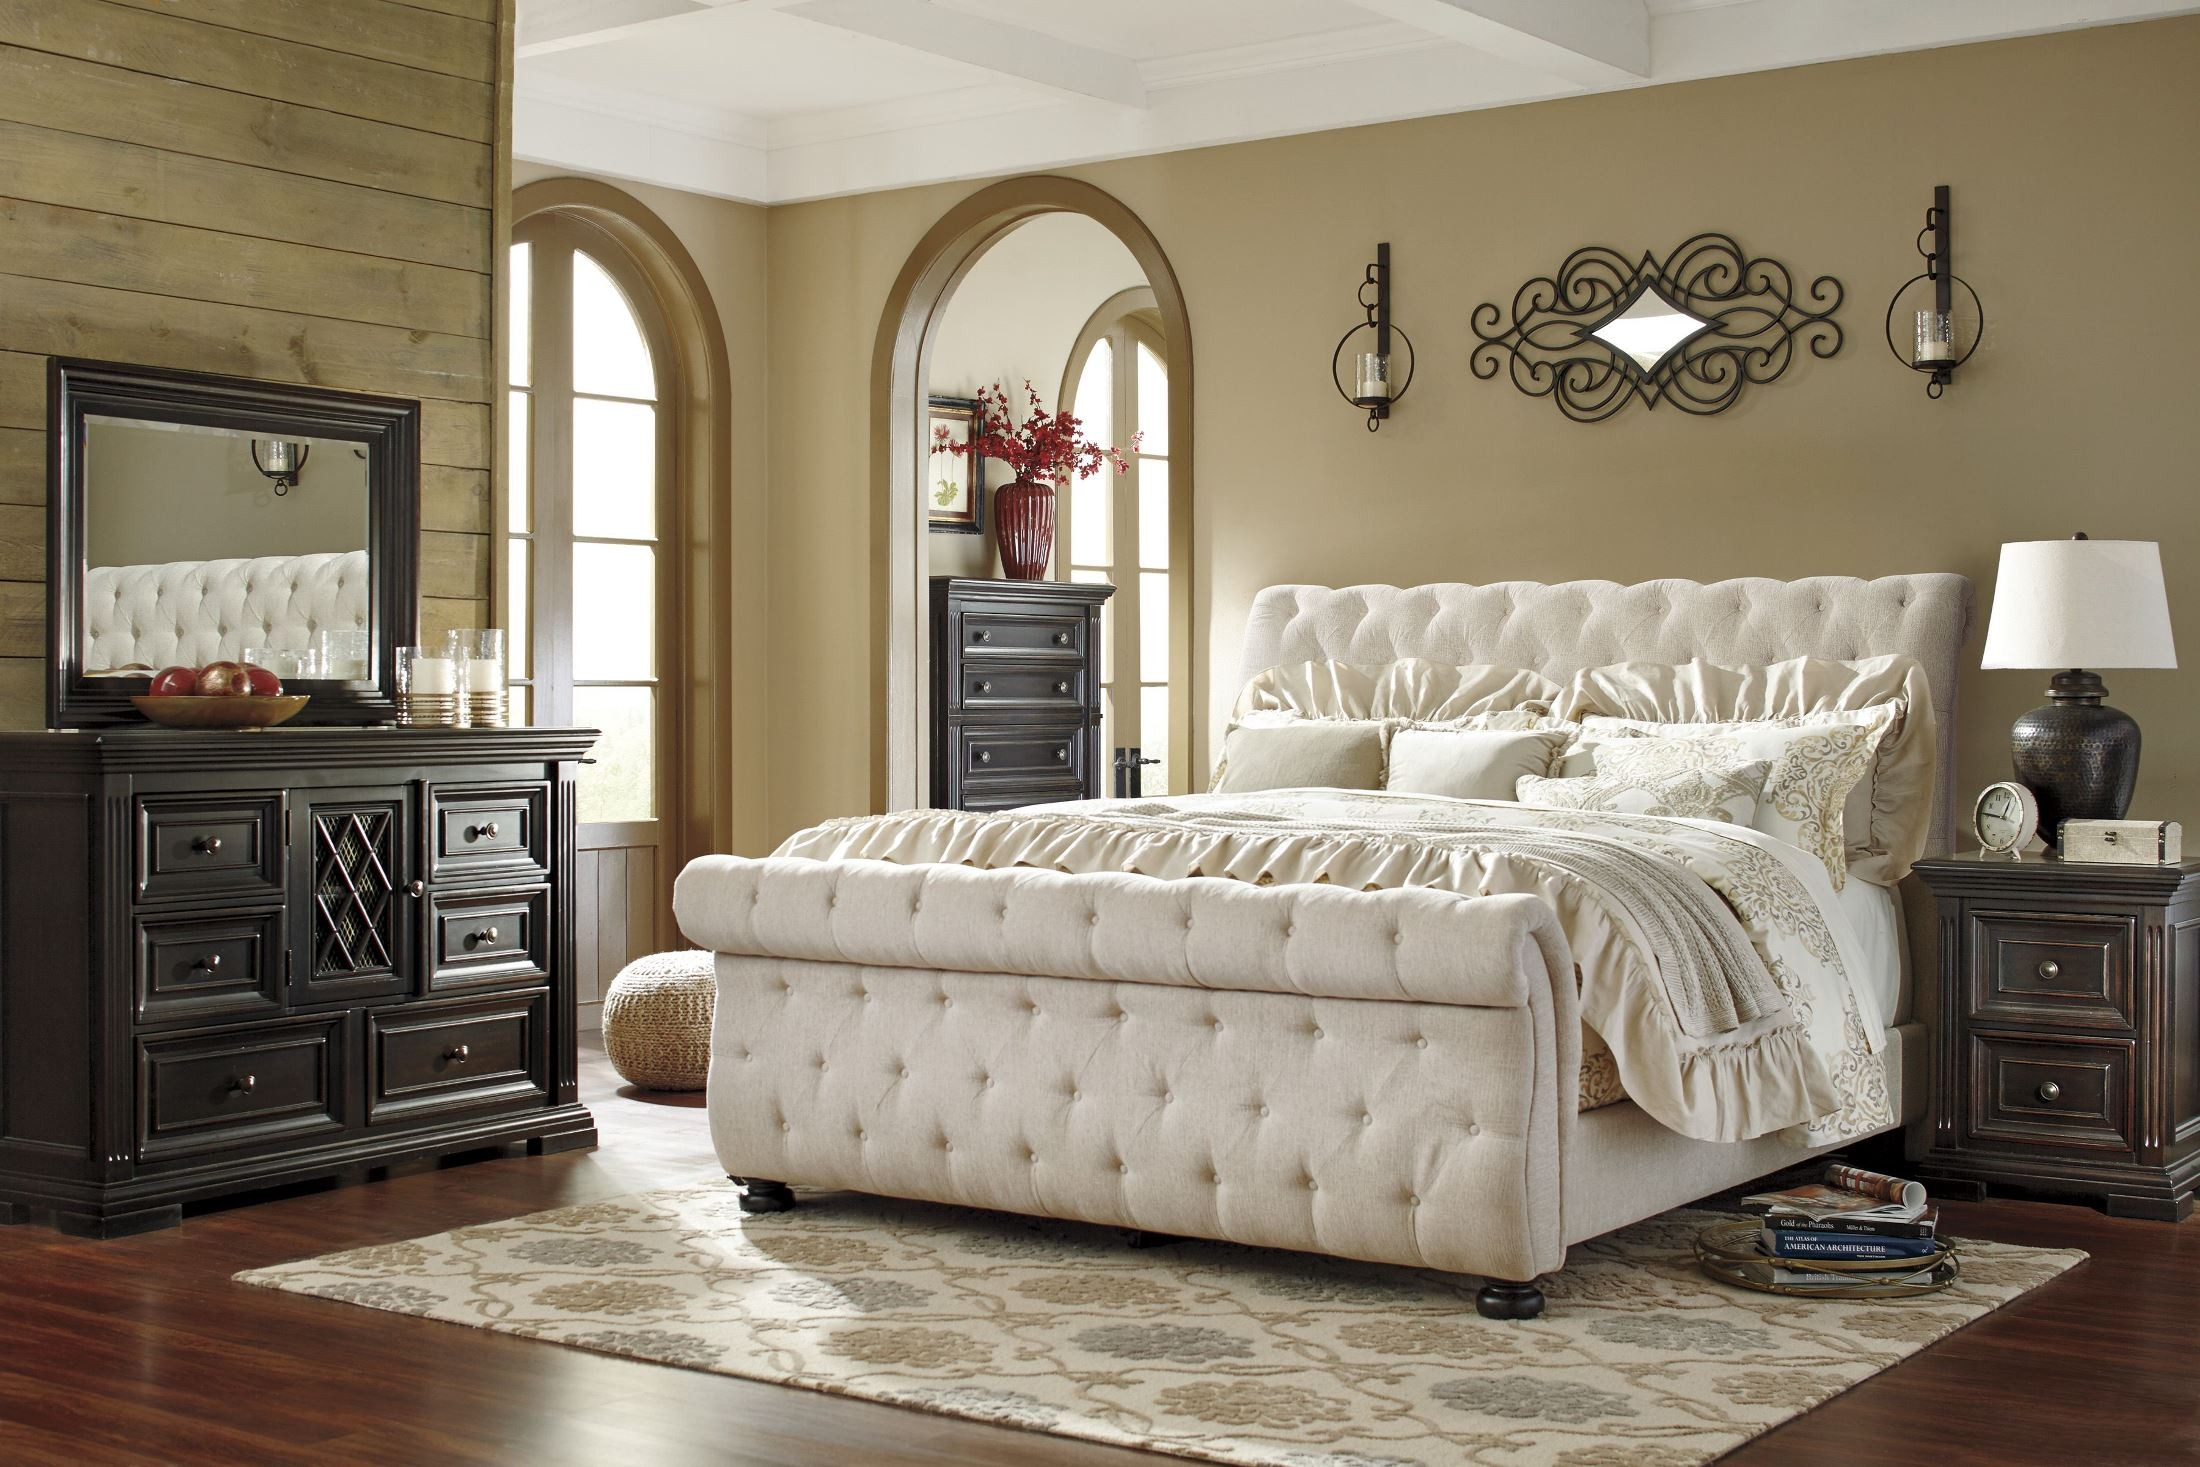 Willenburg Linen King Upholstered Sleigh Bed From Ashley